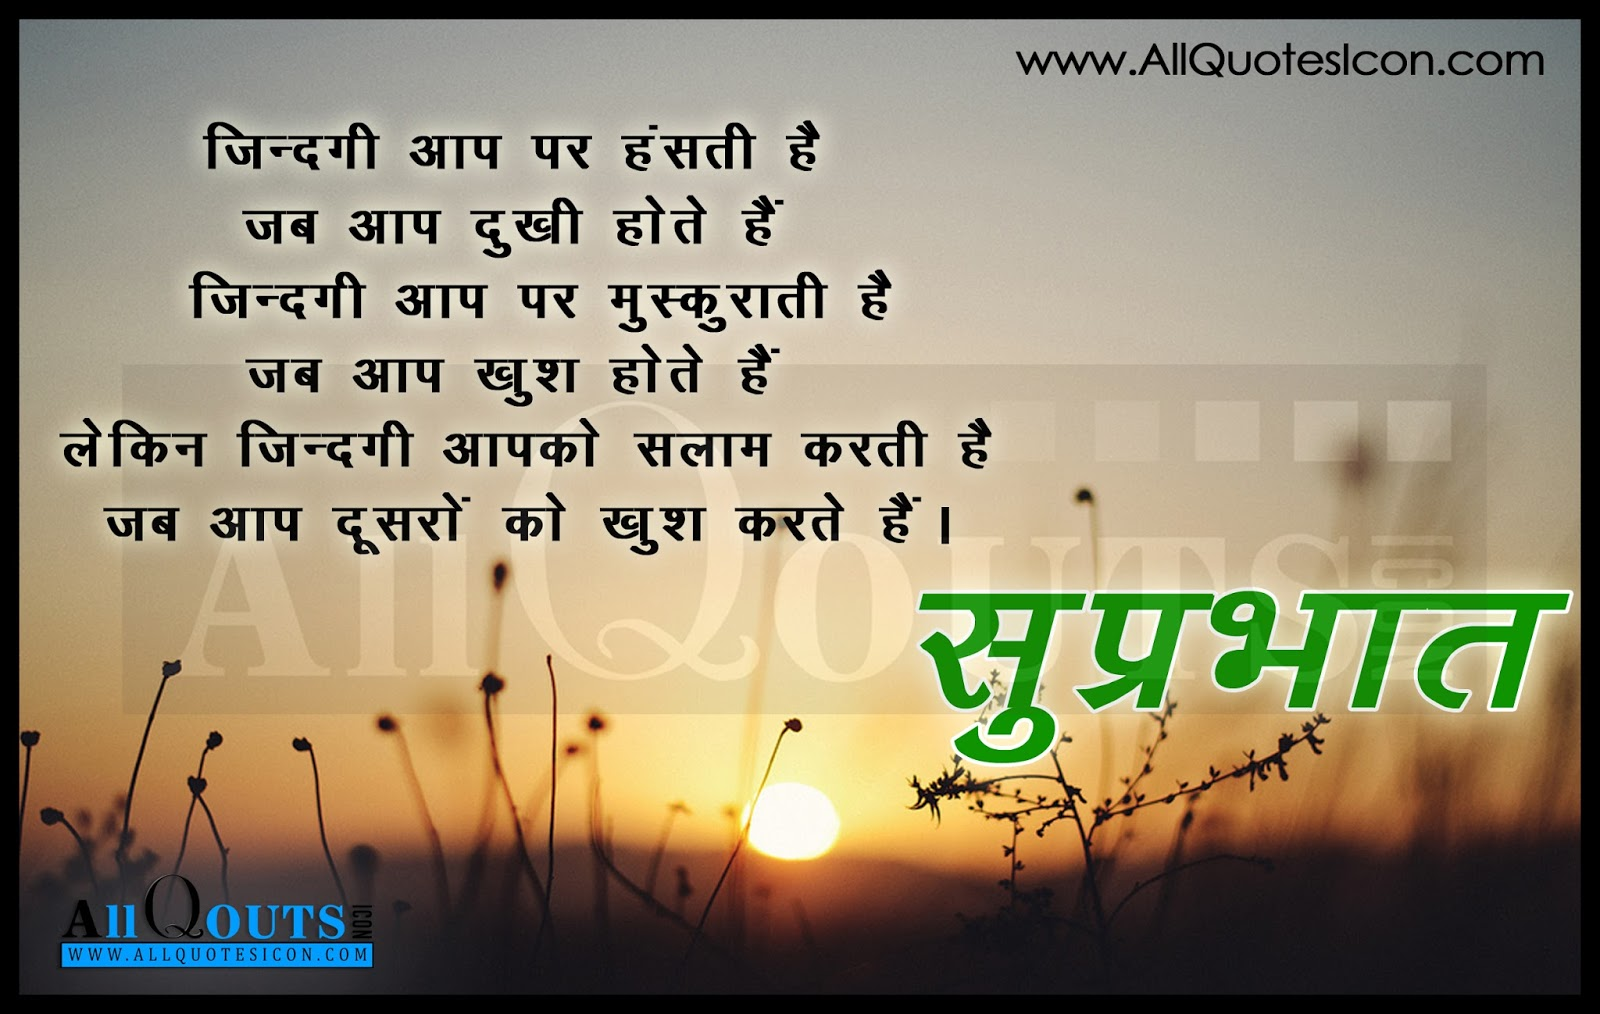 Hindi Shayari Good Morning Inspiration Quotes In Hindi Pictures Best Letest Love Shayri Hd Photos Good Morning Inspiration Quotes In Hindi Pictures Best Good